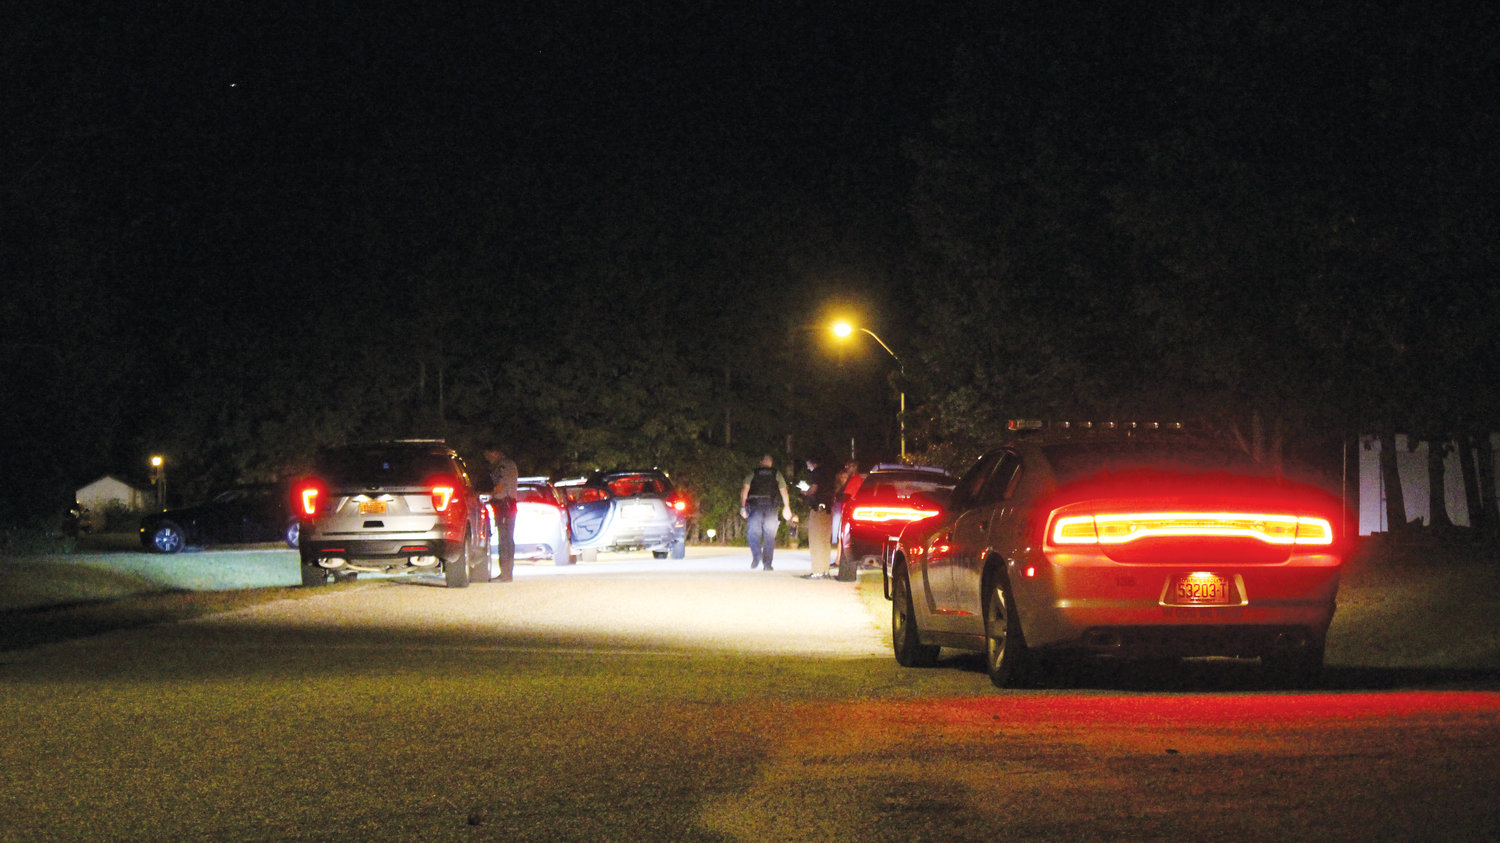 Harnett County Sheriff's deputies were called to the scene of a shooting in Ridge Run outside Lillington Tuesday night. Gerold McEachin Jr., 36, of U.S. 421, Lillington, was killed and the reported shooter, Christopher Chance, 33, lived at the home.